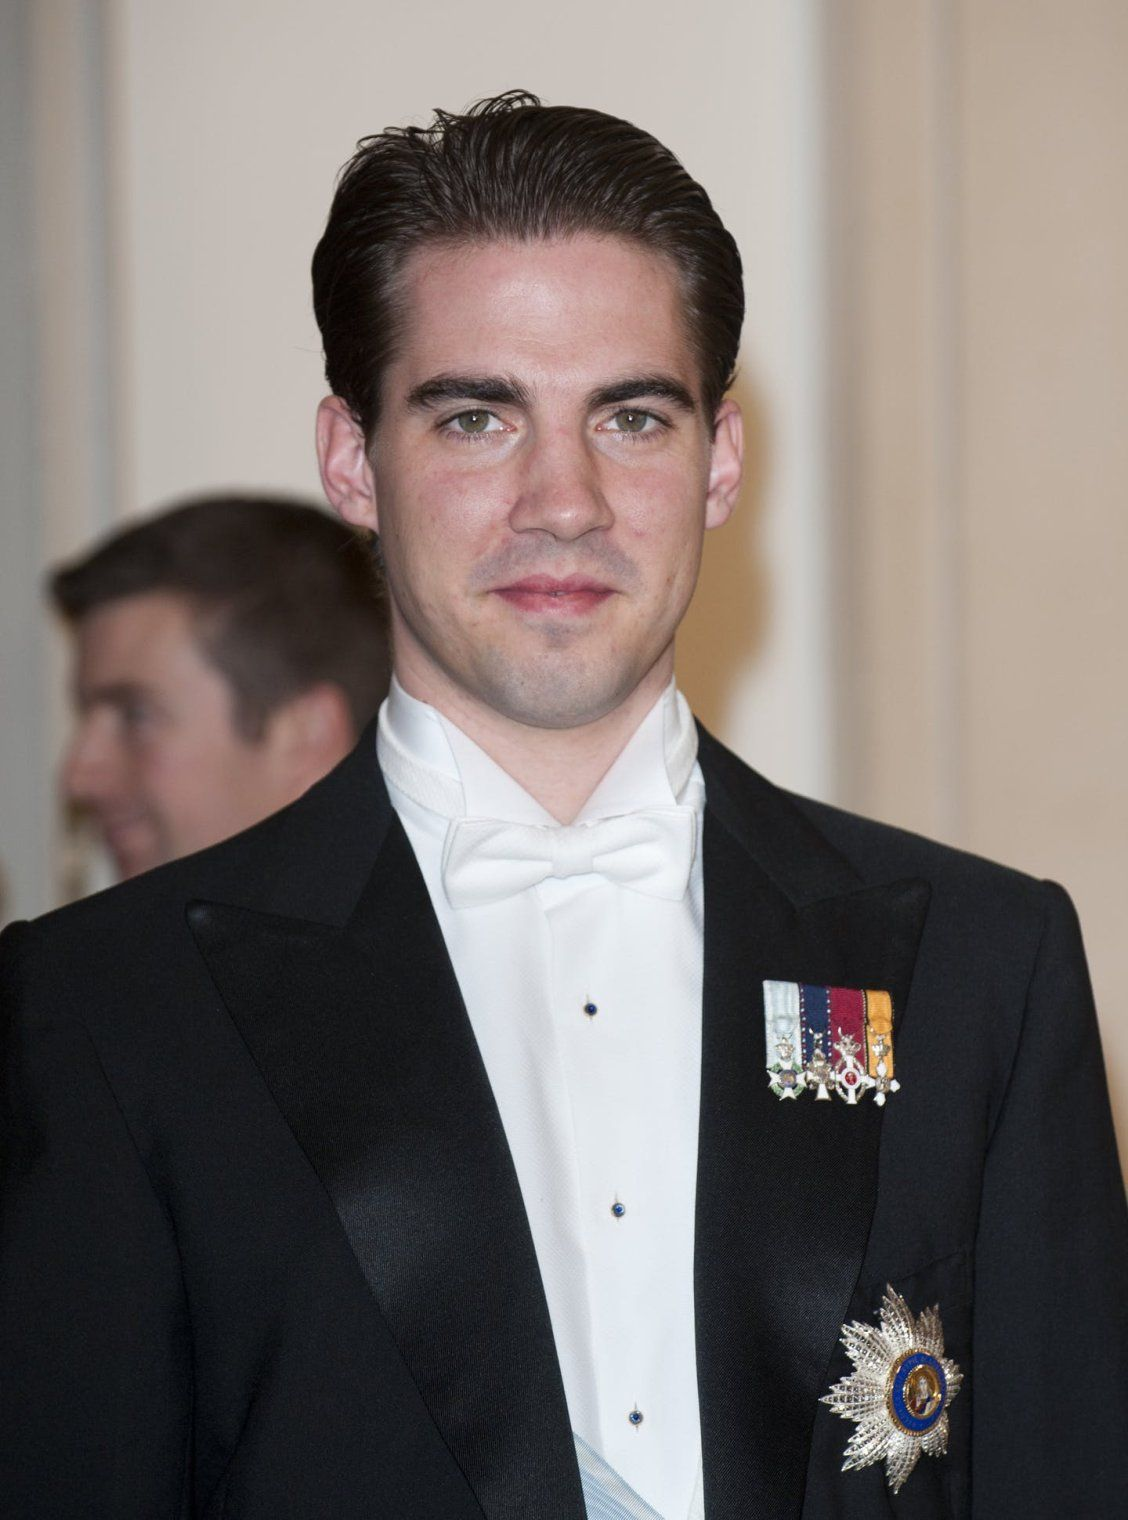 Eurohistory: Prince Philippos of Greece and Denmark is